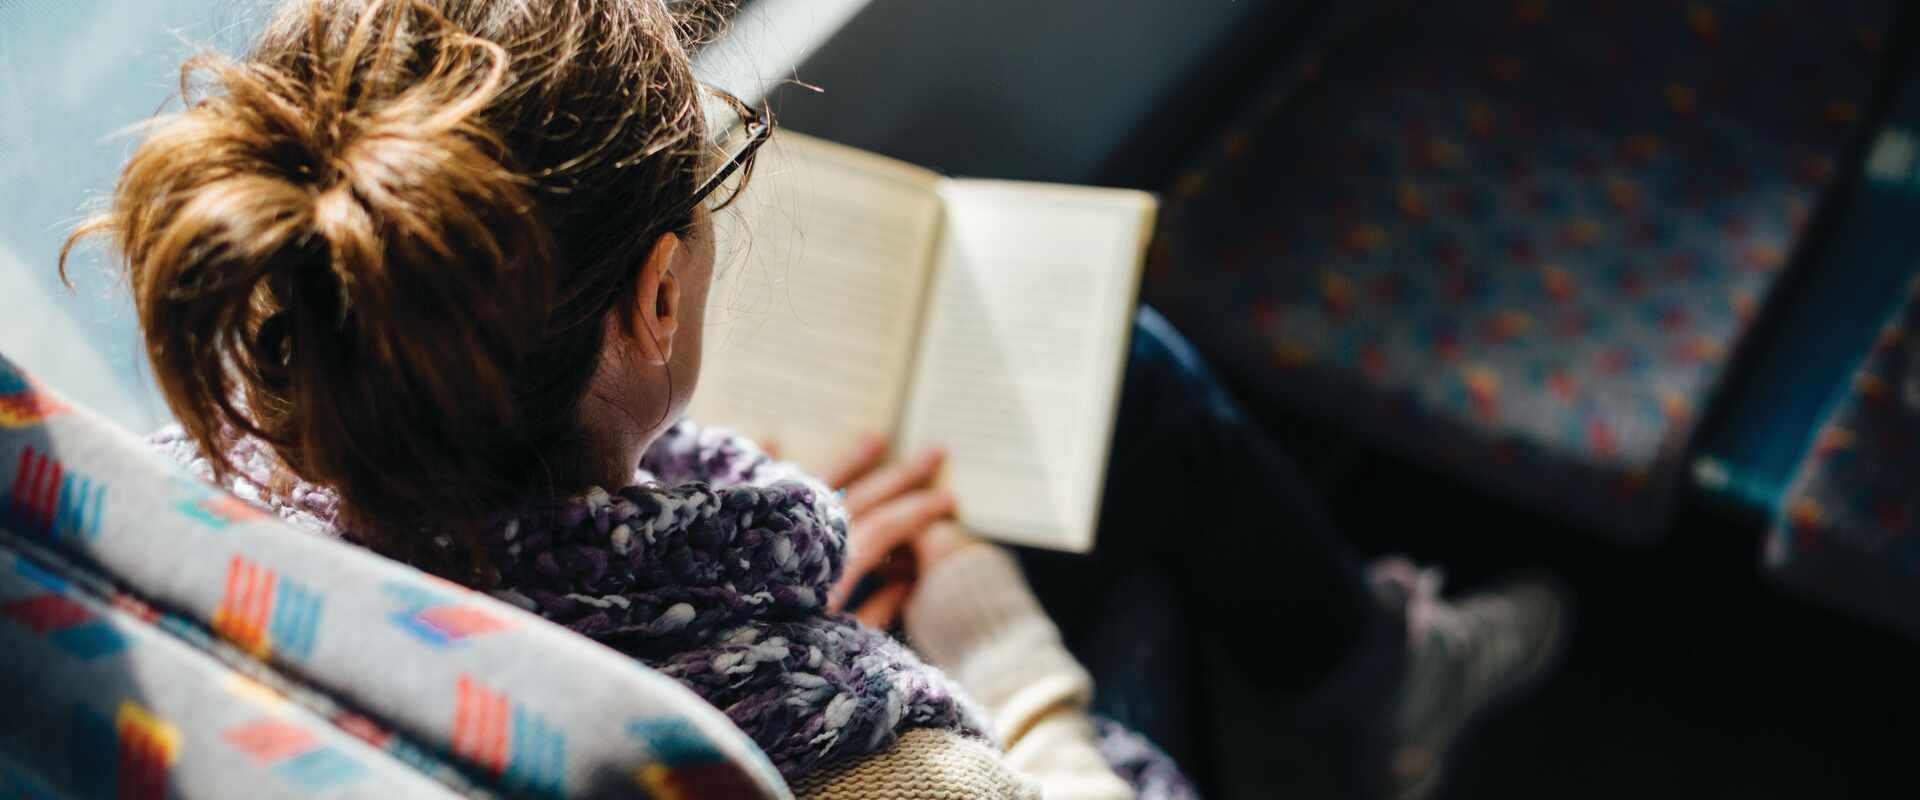 Person reading book on train